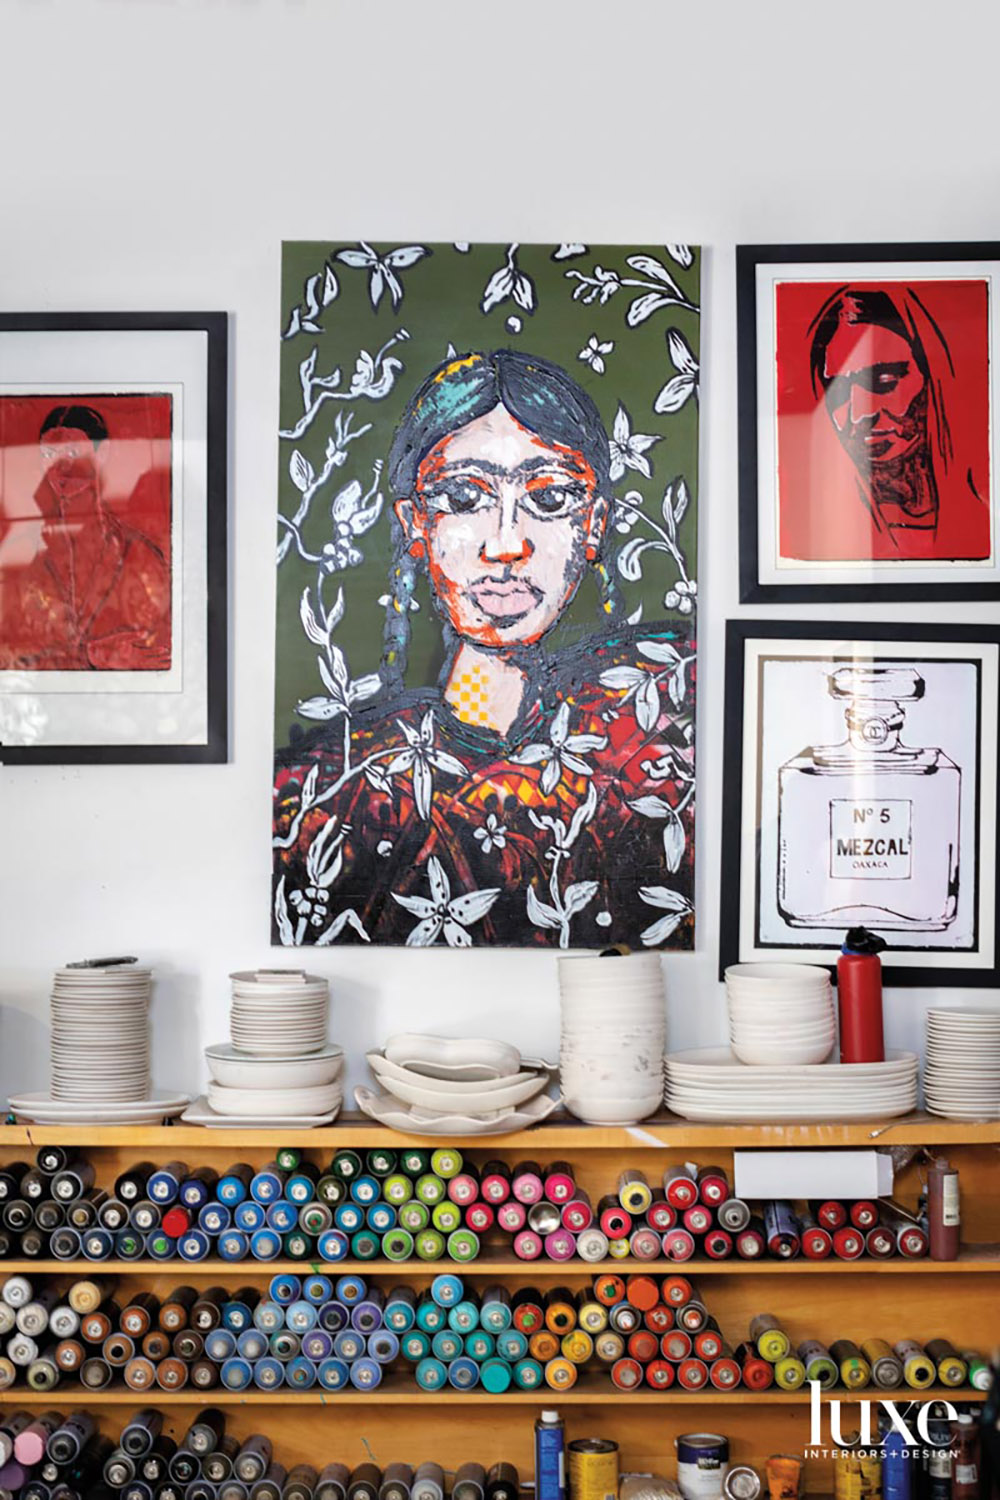 A group of paintings above shelves with ceramics and paint